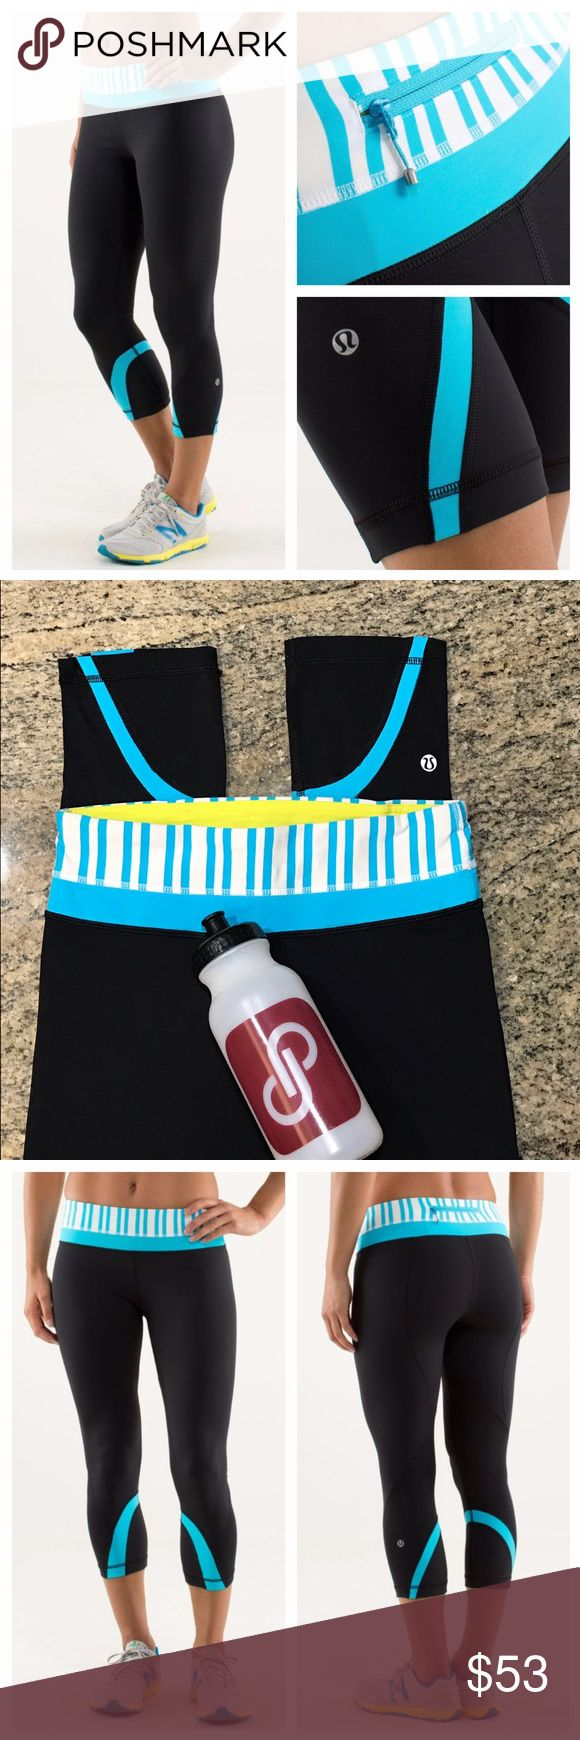 Lululemon Inspire Crop II Twin Stripe SpryBlue BLK When we're training hard on the track and the trails, we want to work up a serious sweat without grime sticking to our legs. These crops were designed out of inherently wicking fabrics so our skin stays dry and placed mesh panels behind the knees to helps us cool. back zipper pocket. Medium rise, tight fit. No size dot, size 4. Mess upon request. Excellent condition. Minor cracking of logo (pictured) All reasonable offers are welcome! Please…